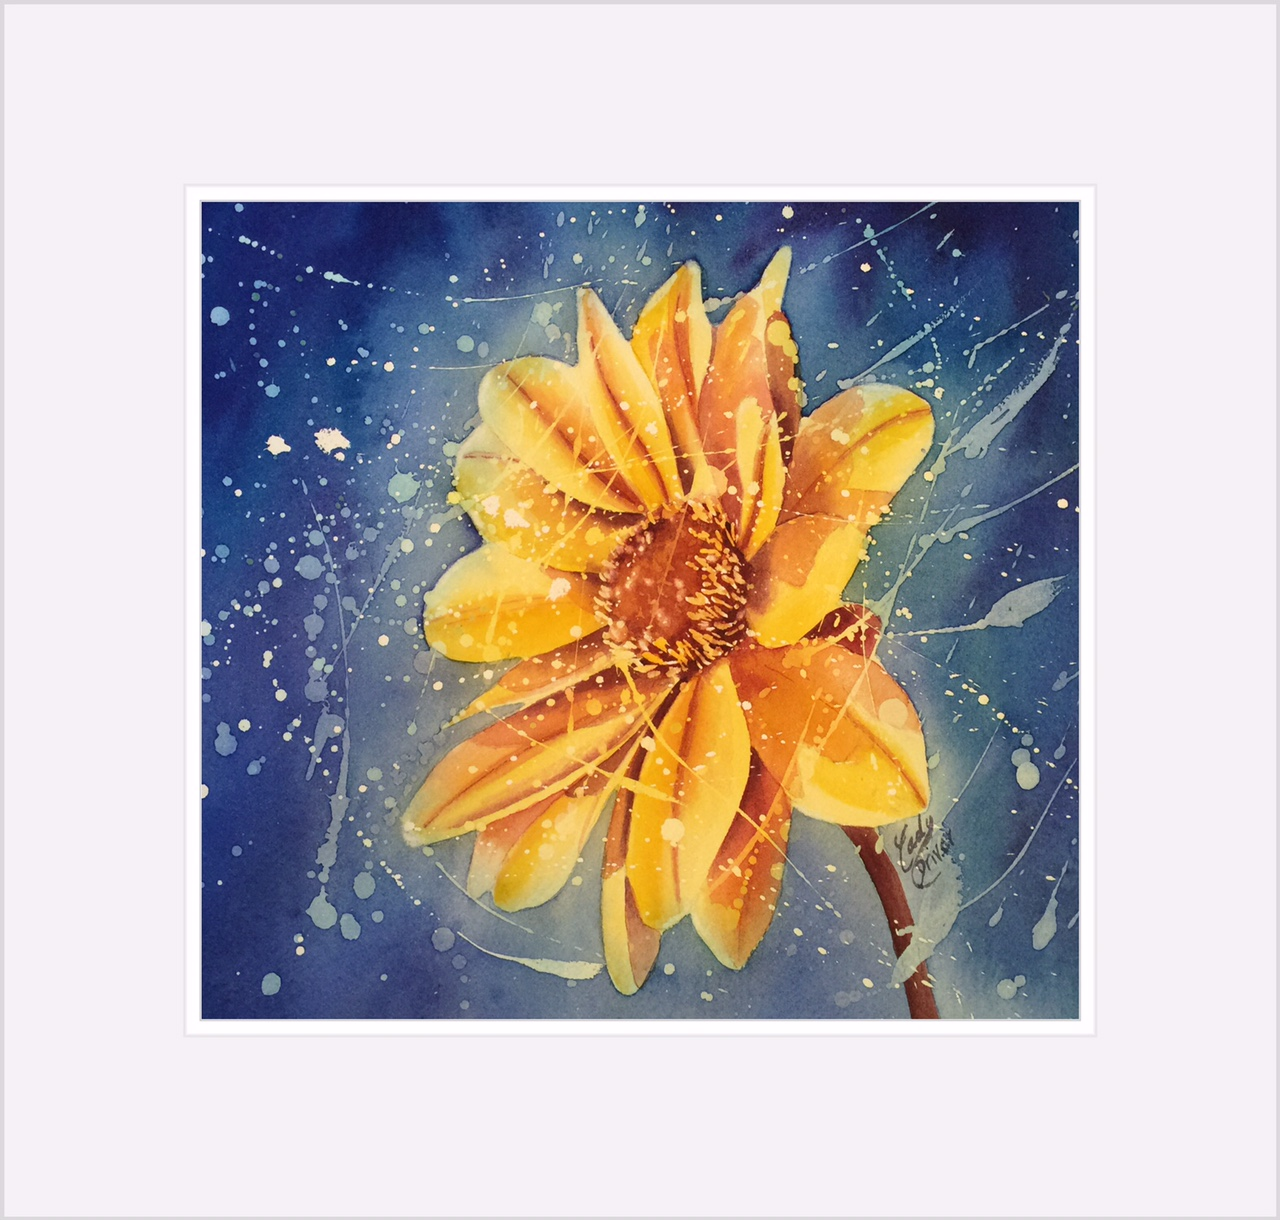 Completed watercolor paining - Floral Resist 3